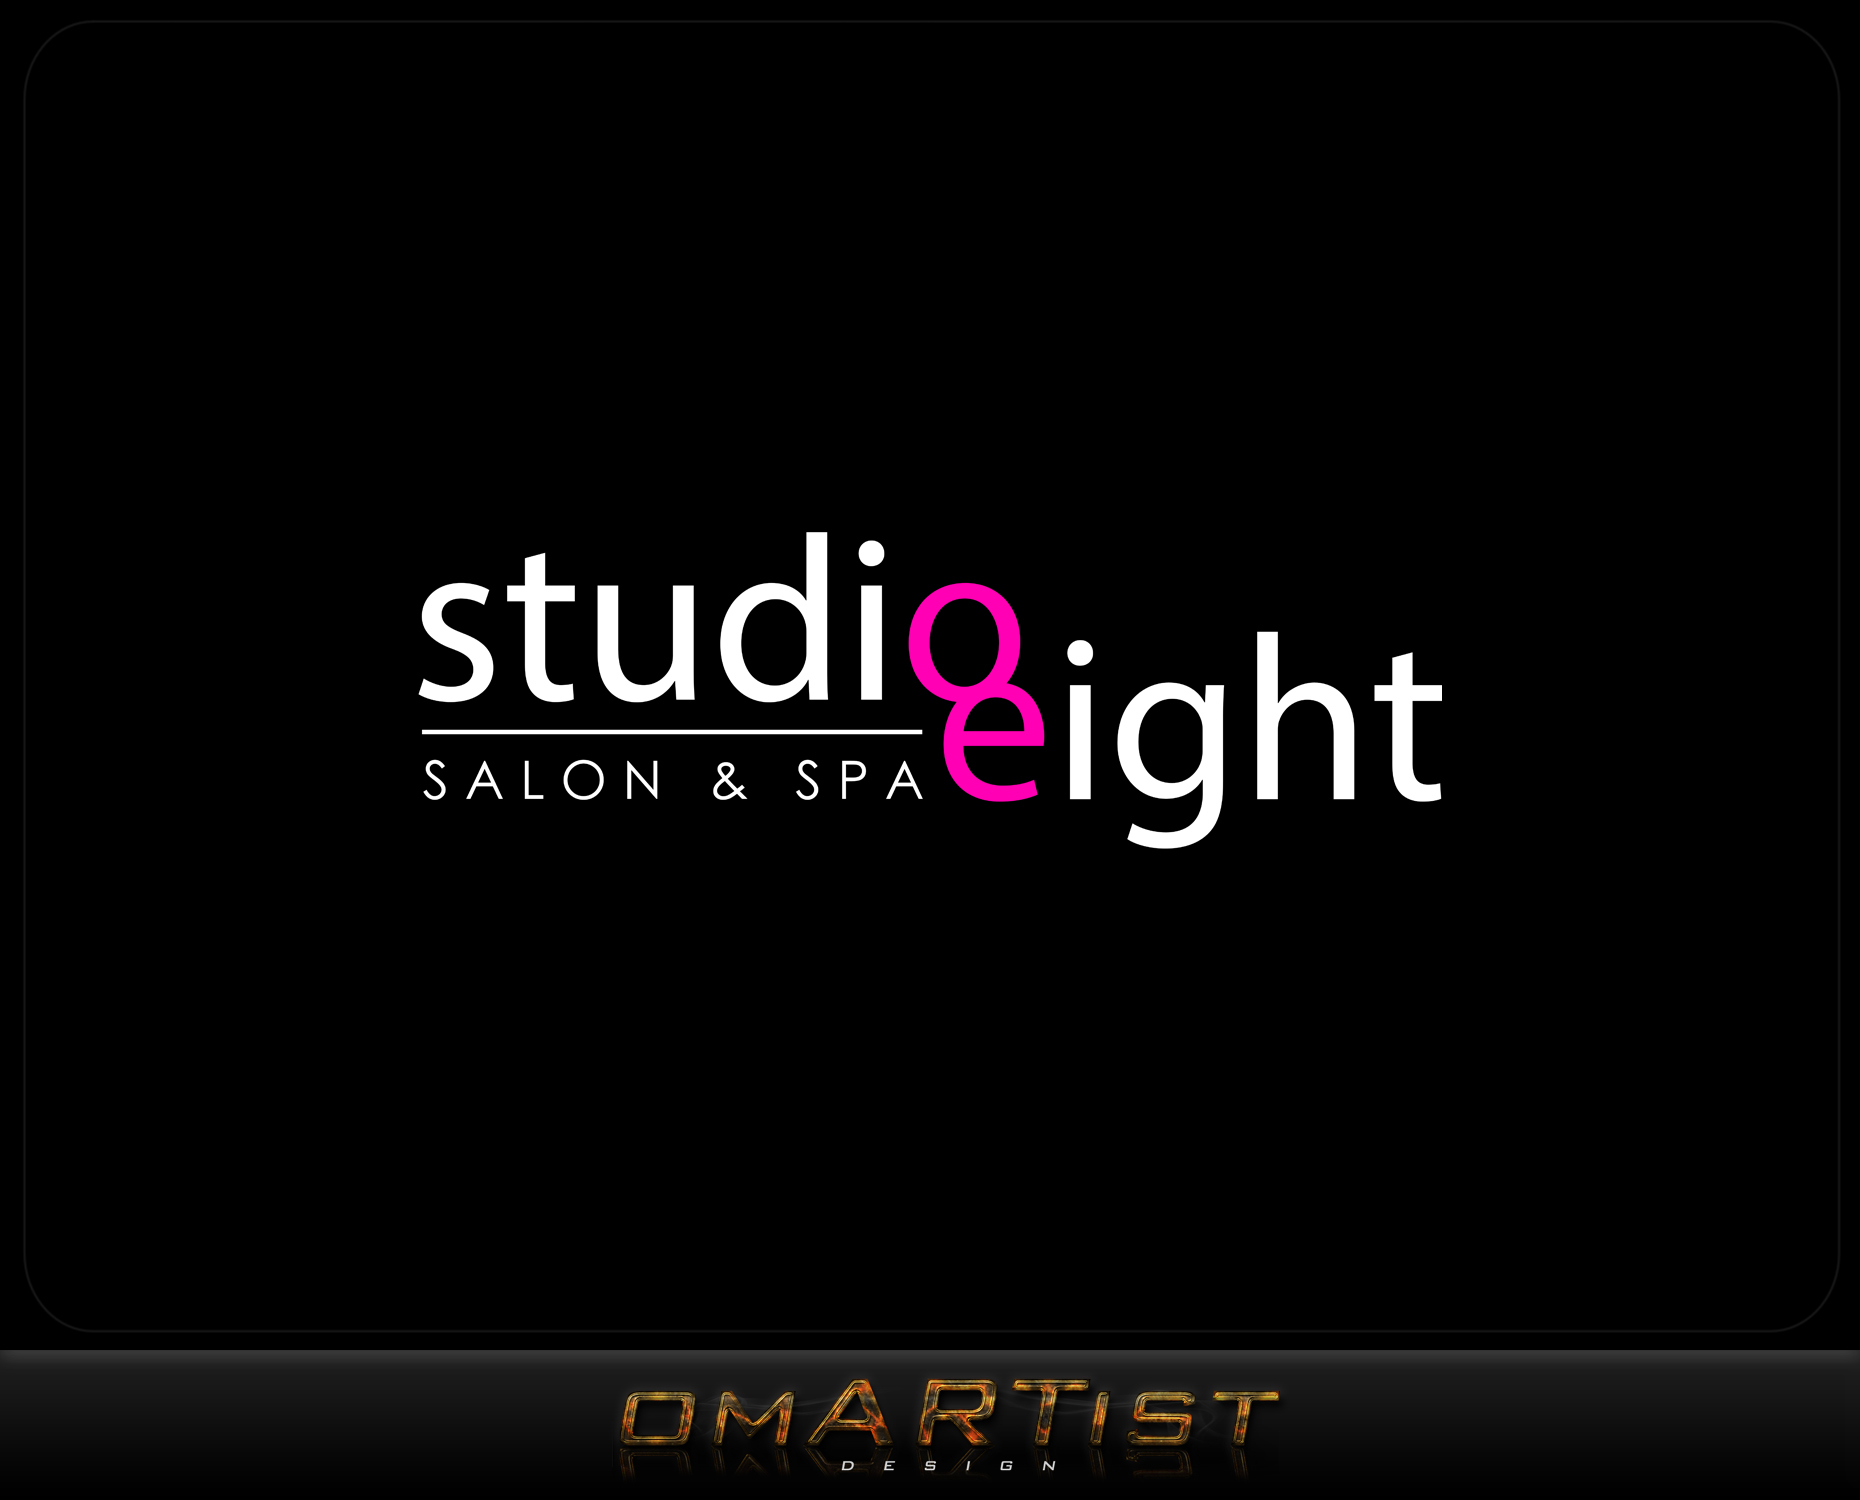 Logo Design by omARTist - Entry No. 91 in the Logo Design Contest Captivating Logo Design for studio eight salon & spa.